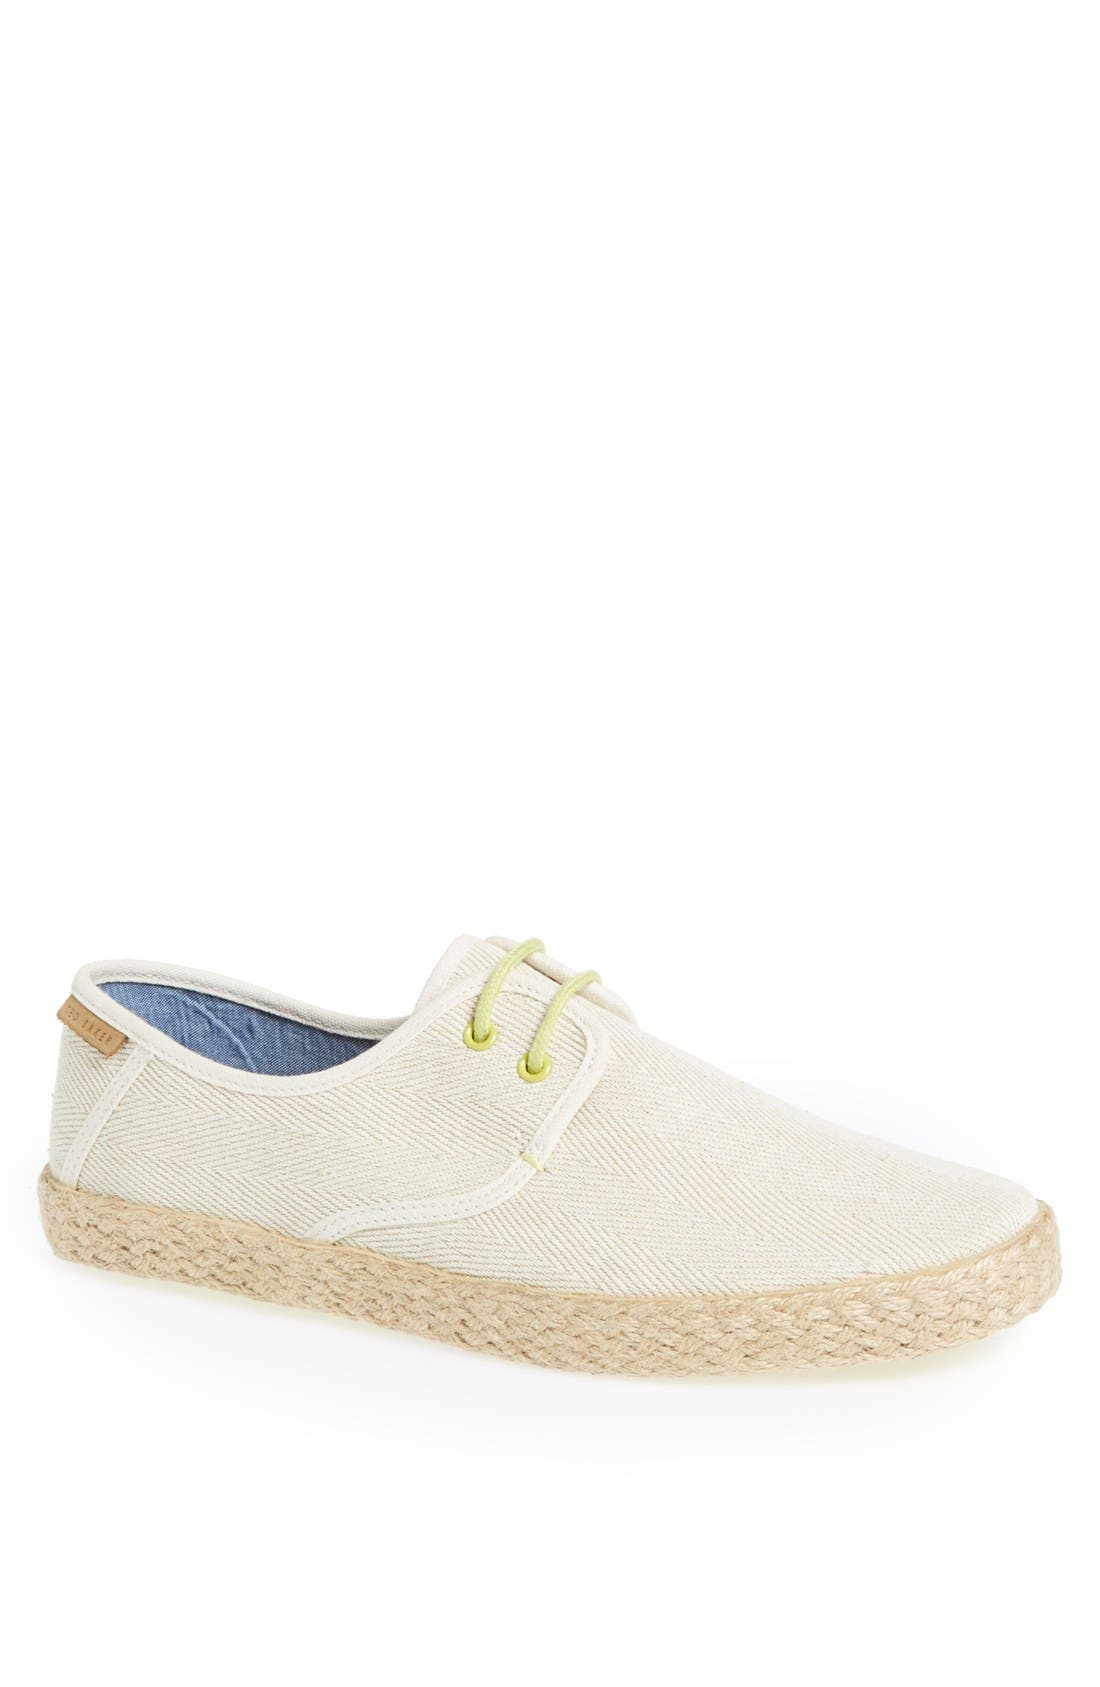 Alternate Image 1 Selected - Ted Baker London 'Drilll 3' Espadrille Sneaker